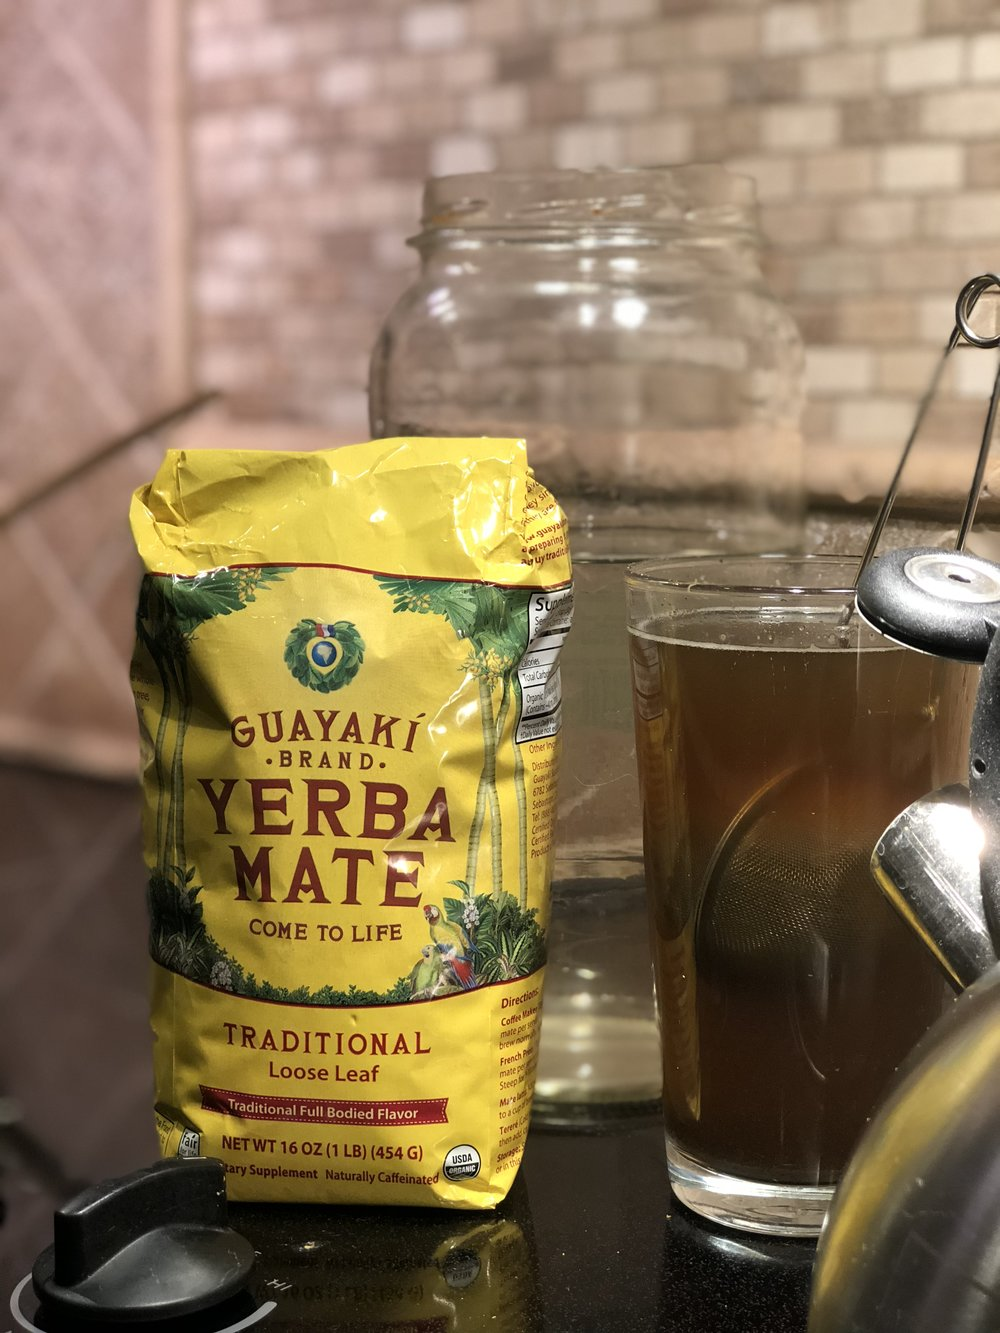 Guakayki Yerba Mate loose leaf is a great start to any morning. Less astringent then coffee and goes great with a local Raw Honey.